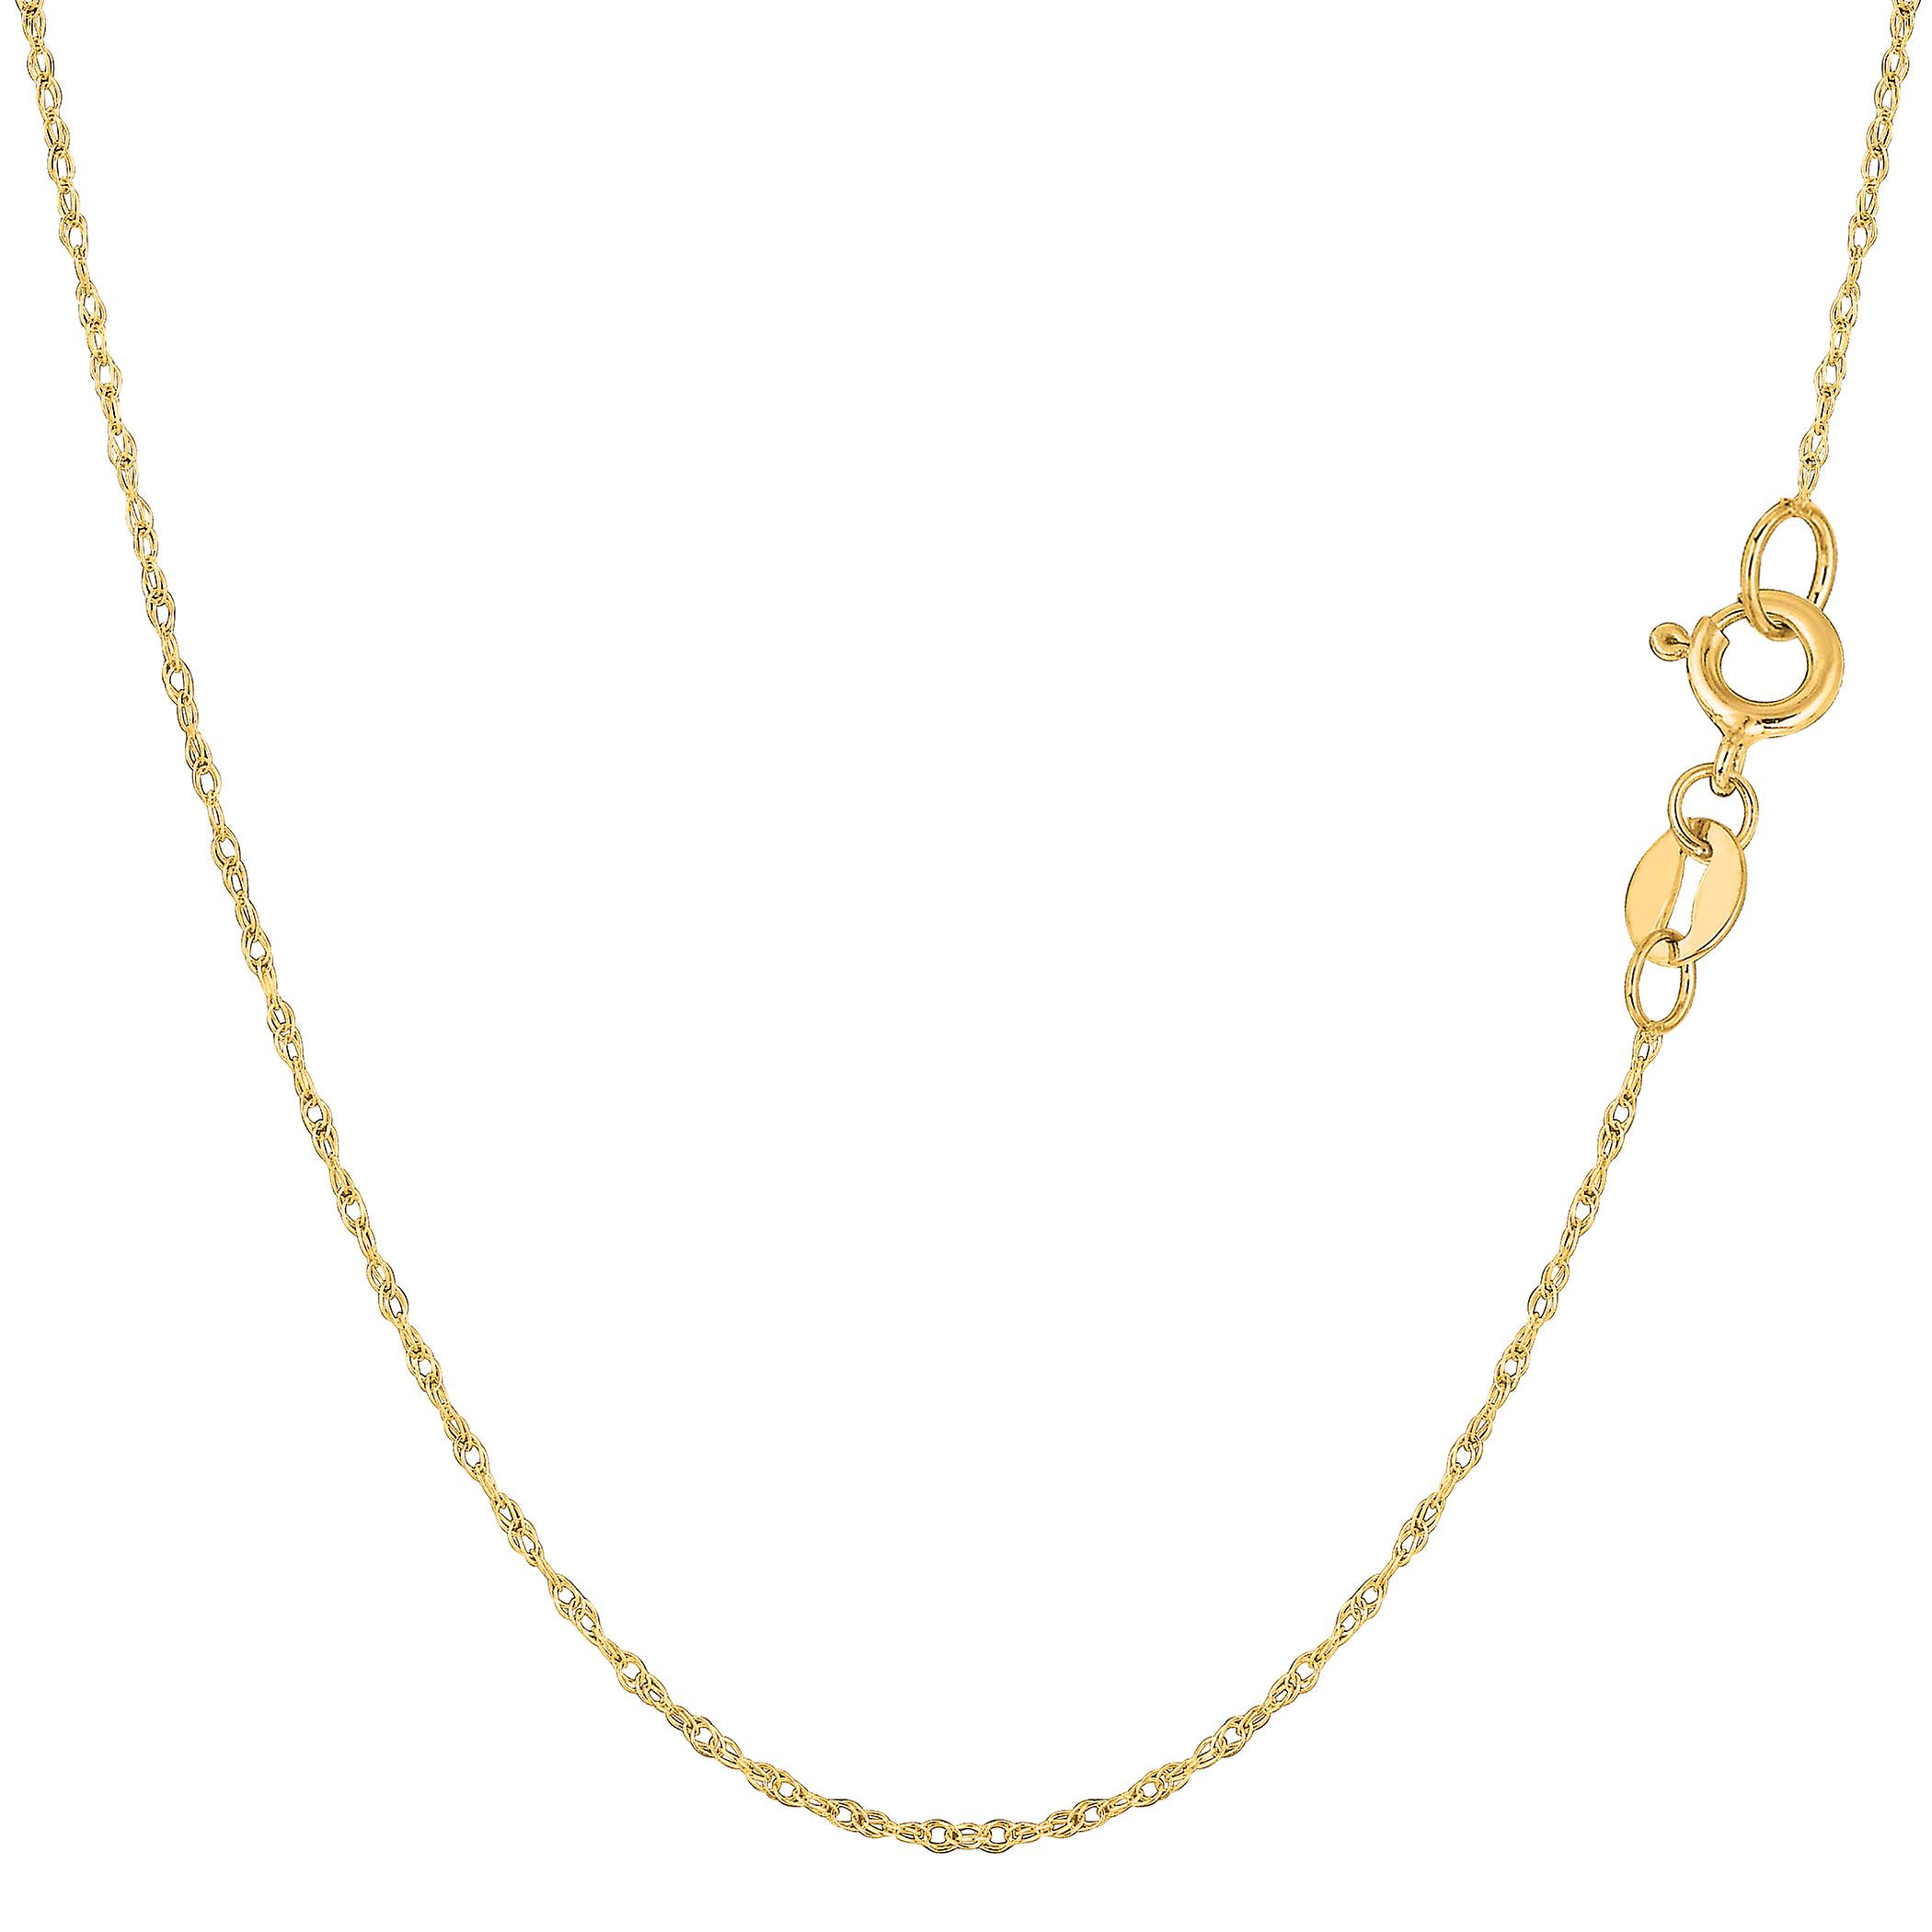 10k Yellow Gold  Rope Chain Necklace, 0.6mm